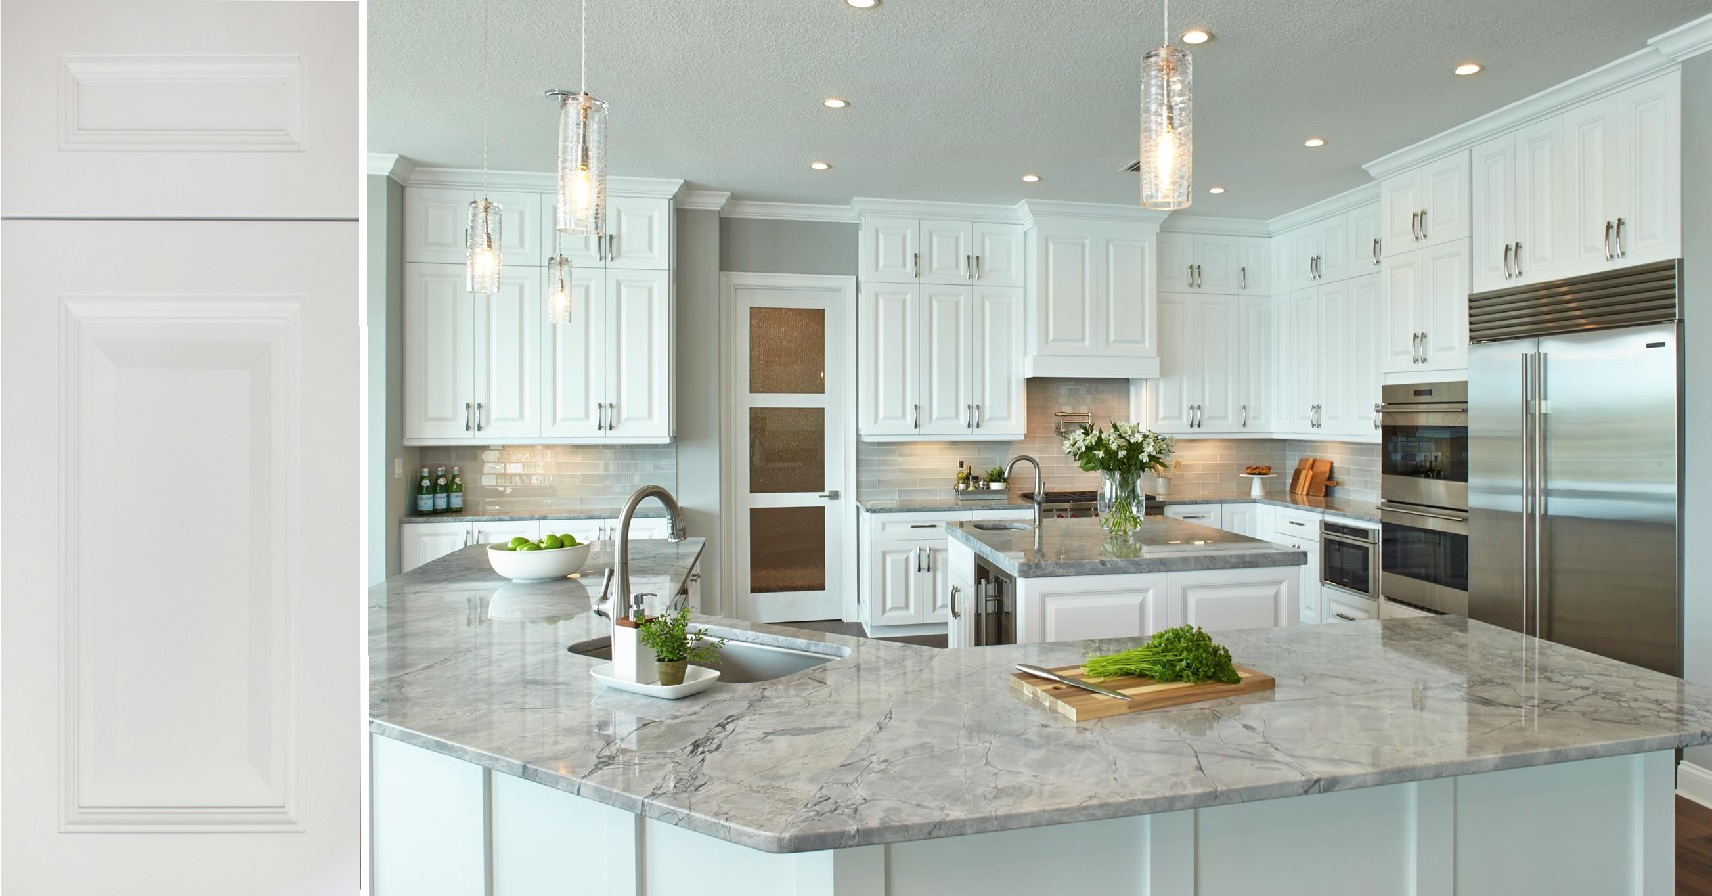 Frameless cabinet san antonio kitchen remodeling contractors stone oak bathroom remodeling alamo heights affordable kitchen cabinet installation boerne kitchen cabinet store helotes Classic White Frameless cabinets Shaker bathroom cabinets kitchen cabinets